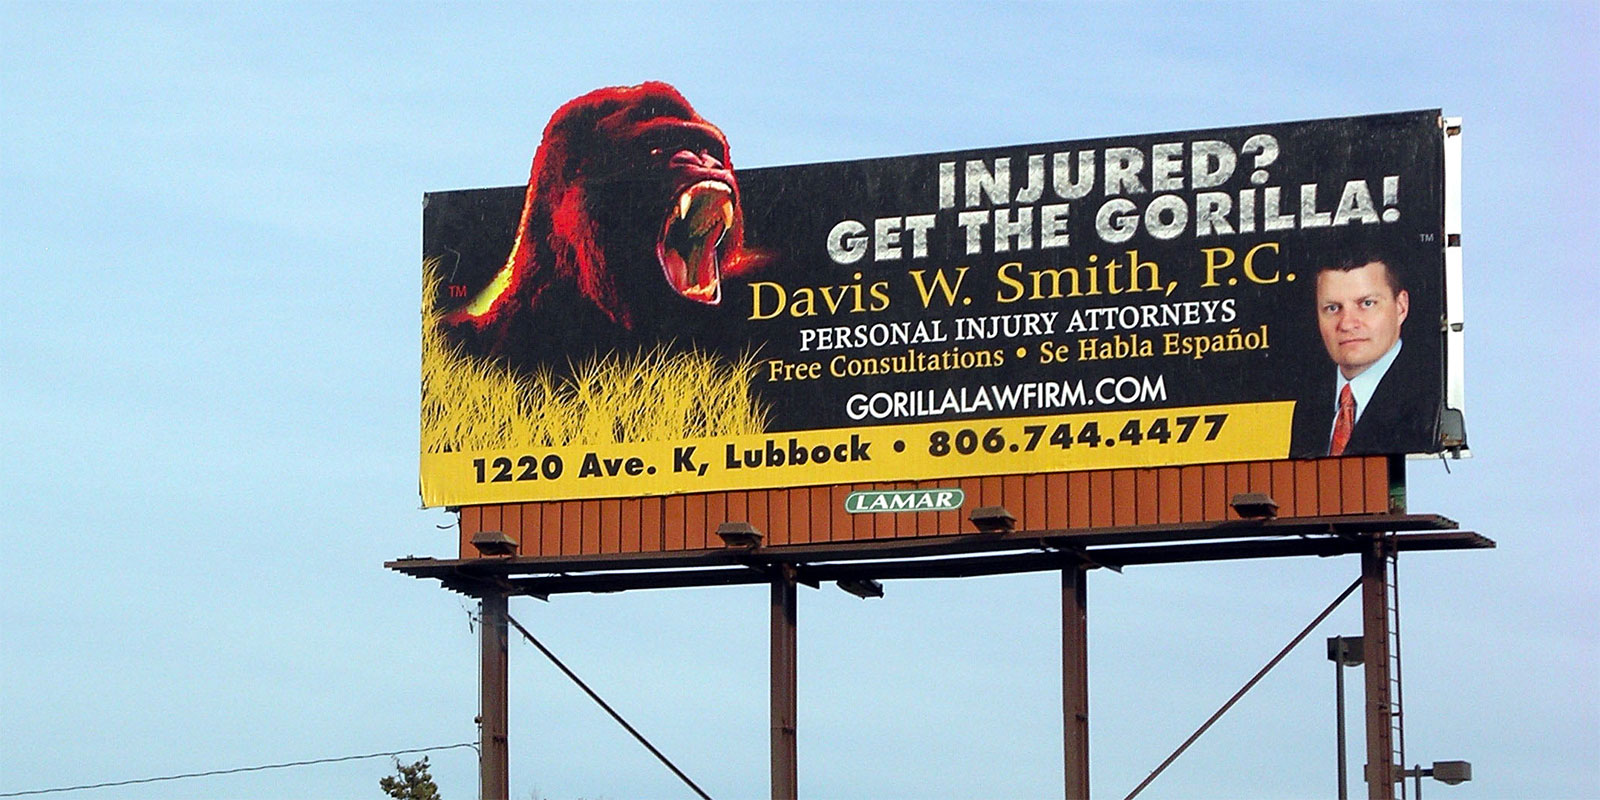 Image result for worst lawyer accident legal billboard advertising""